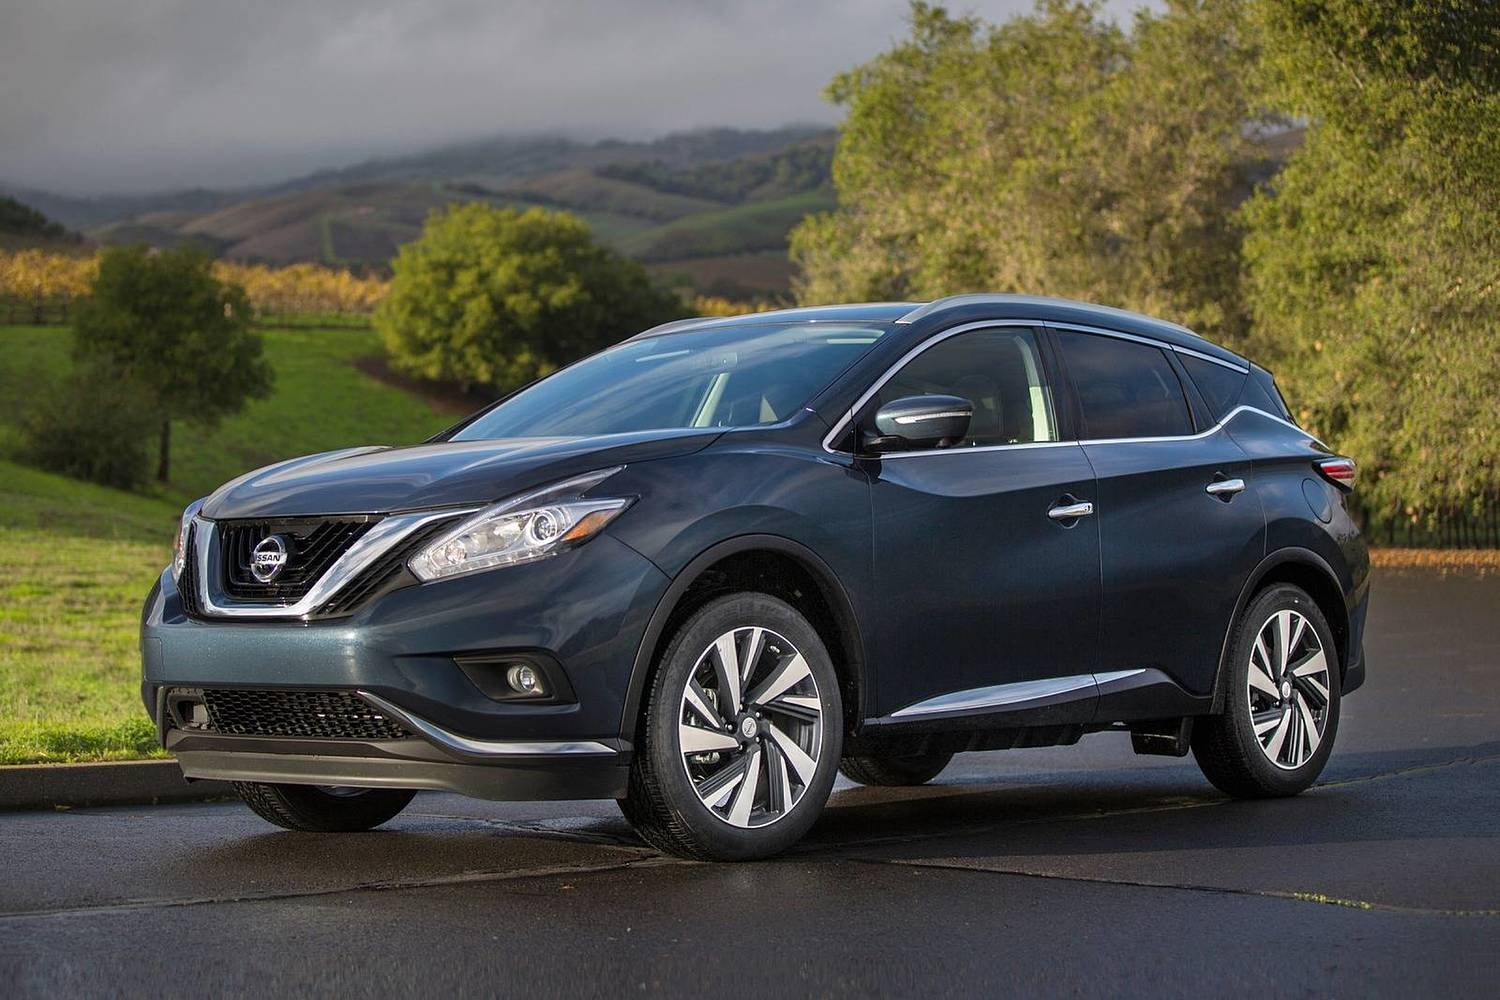 Nissan Murano Platinum 4dr SUV Exterior Shown (2017 model year shown)